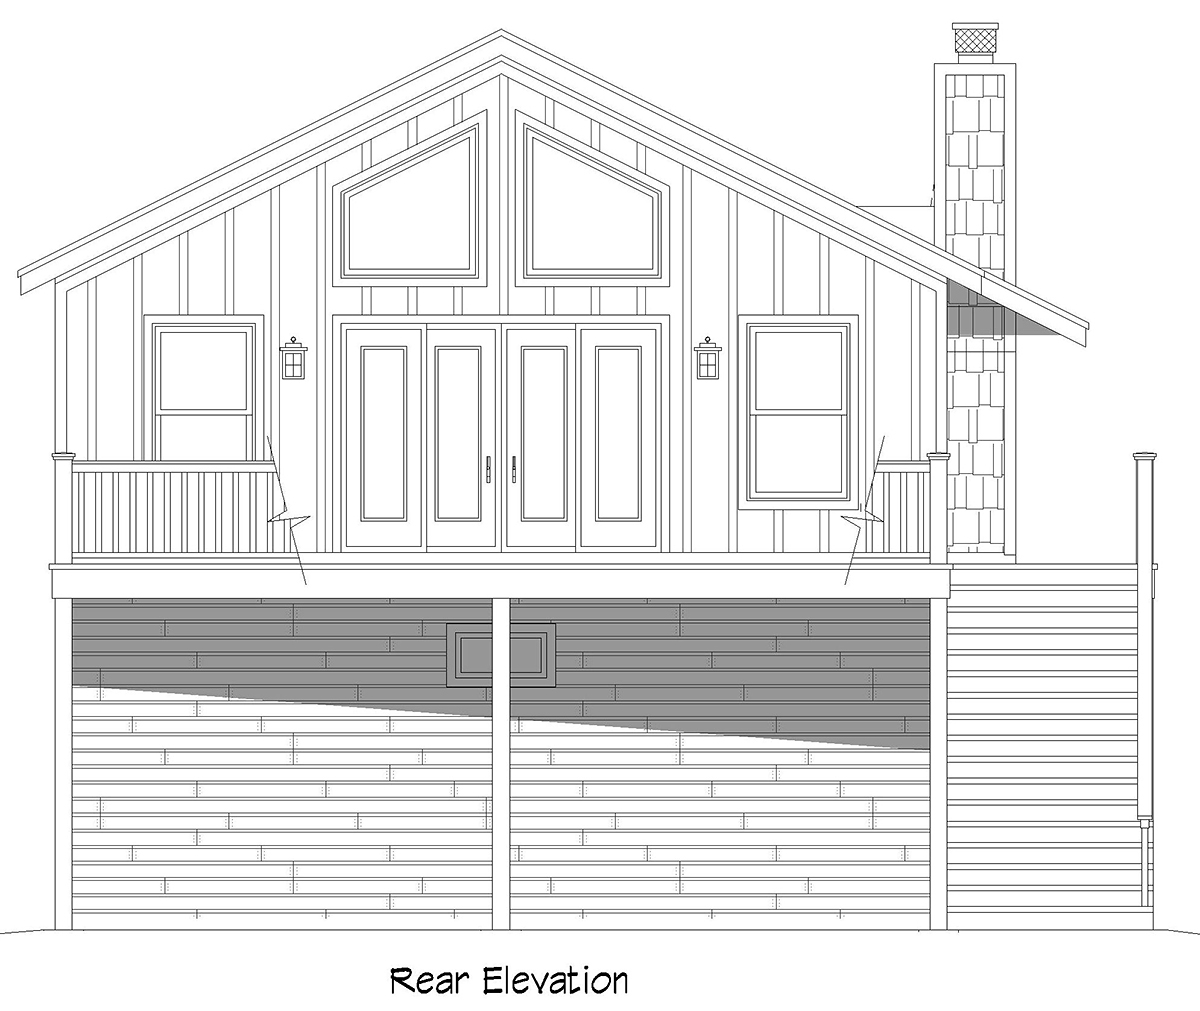 Cape Cod, Saltbox, Traditional Garage-Living Plan 52147 with 1 Beds, 1 Baths, 2 Car Garage Rear Elevation